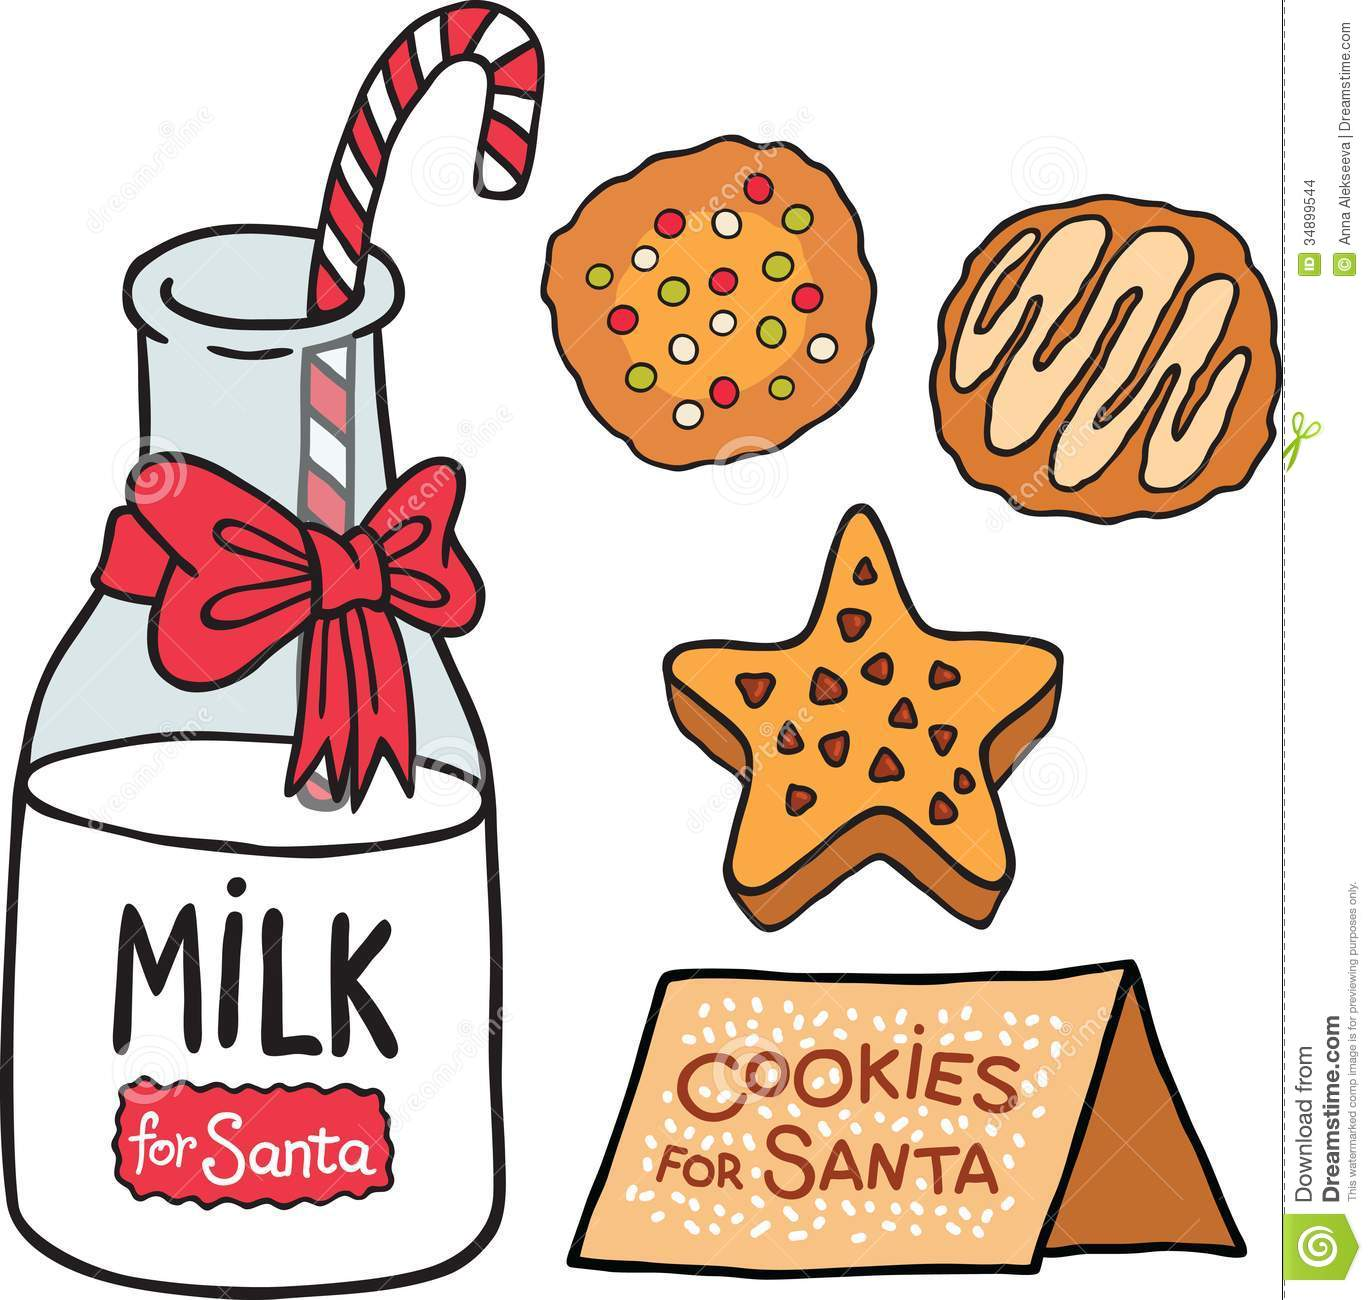 Milk Cookies For Santa Claus Stock Vector Illustration Of Holiday